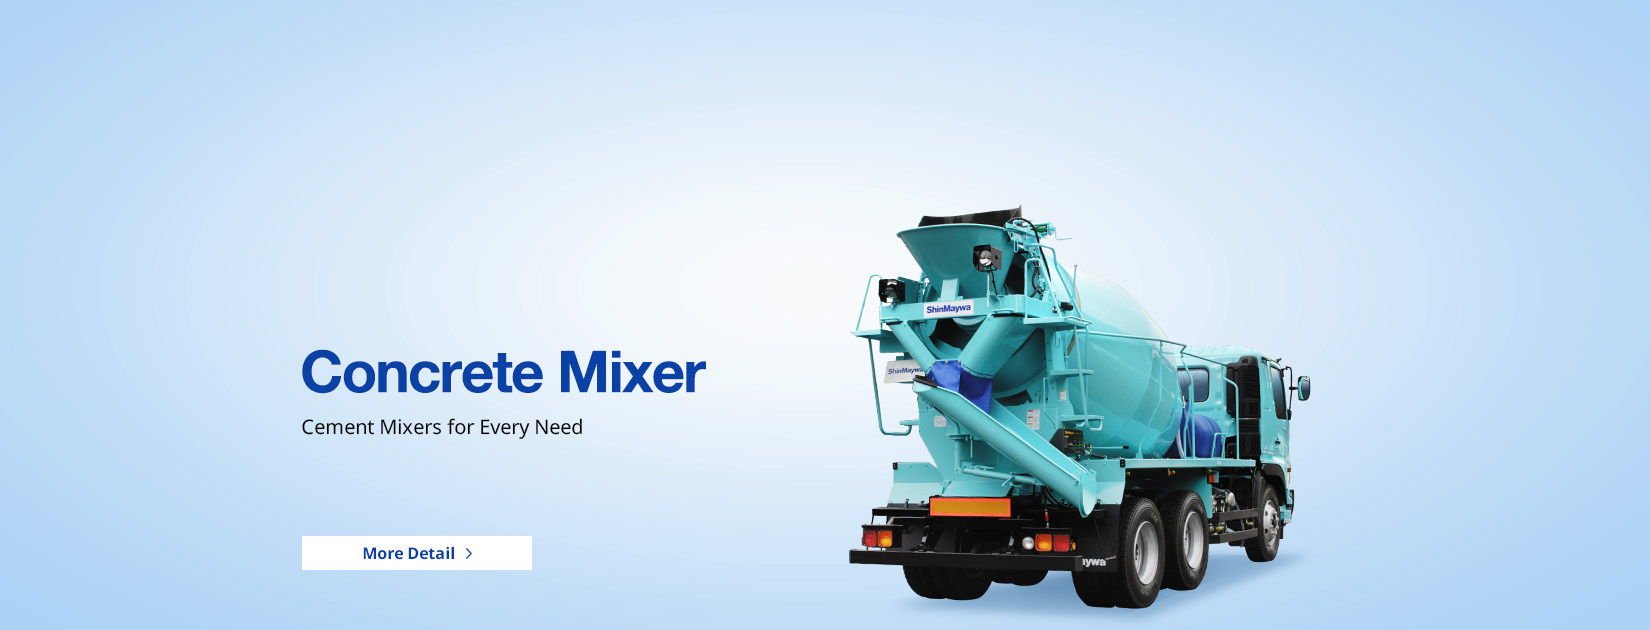 Concrete Mixer Cement Mixer for Every Need